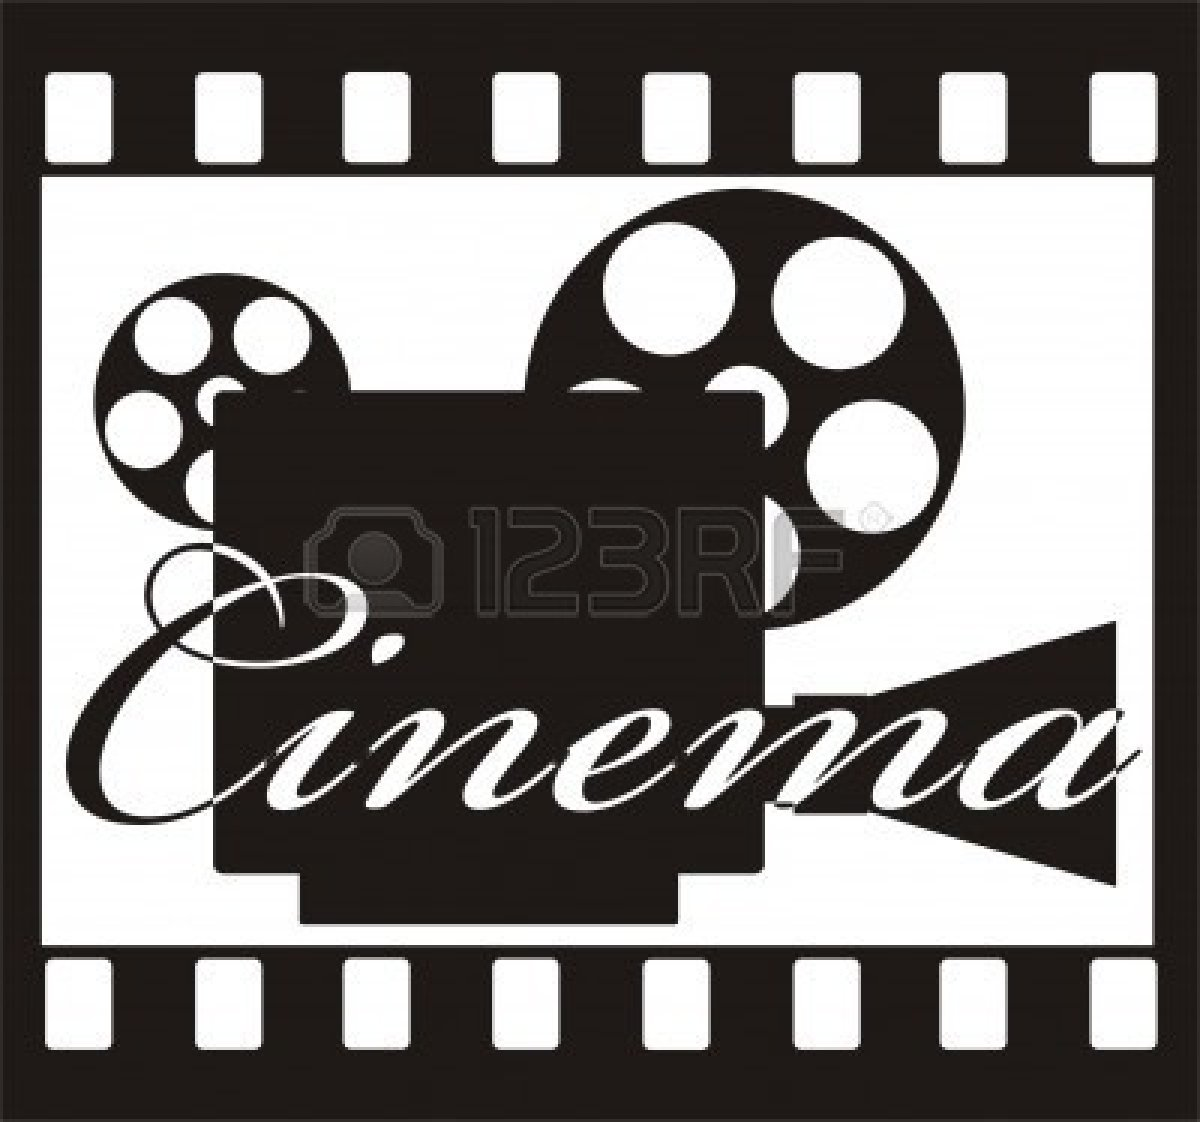 Cinema clipart #5, Download drawings